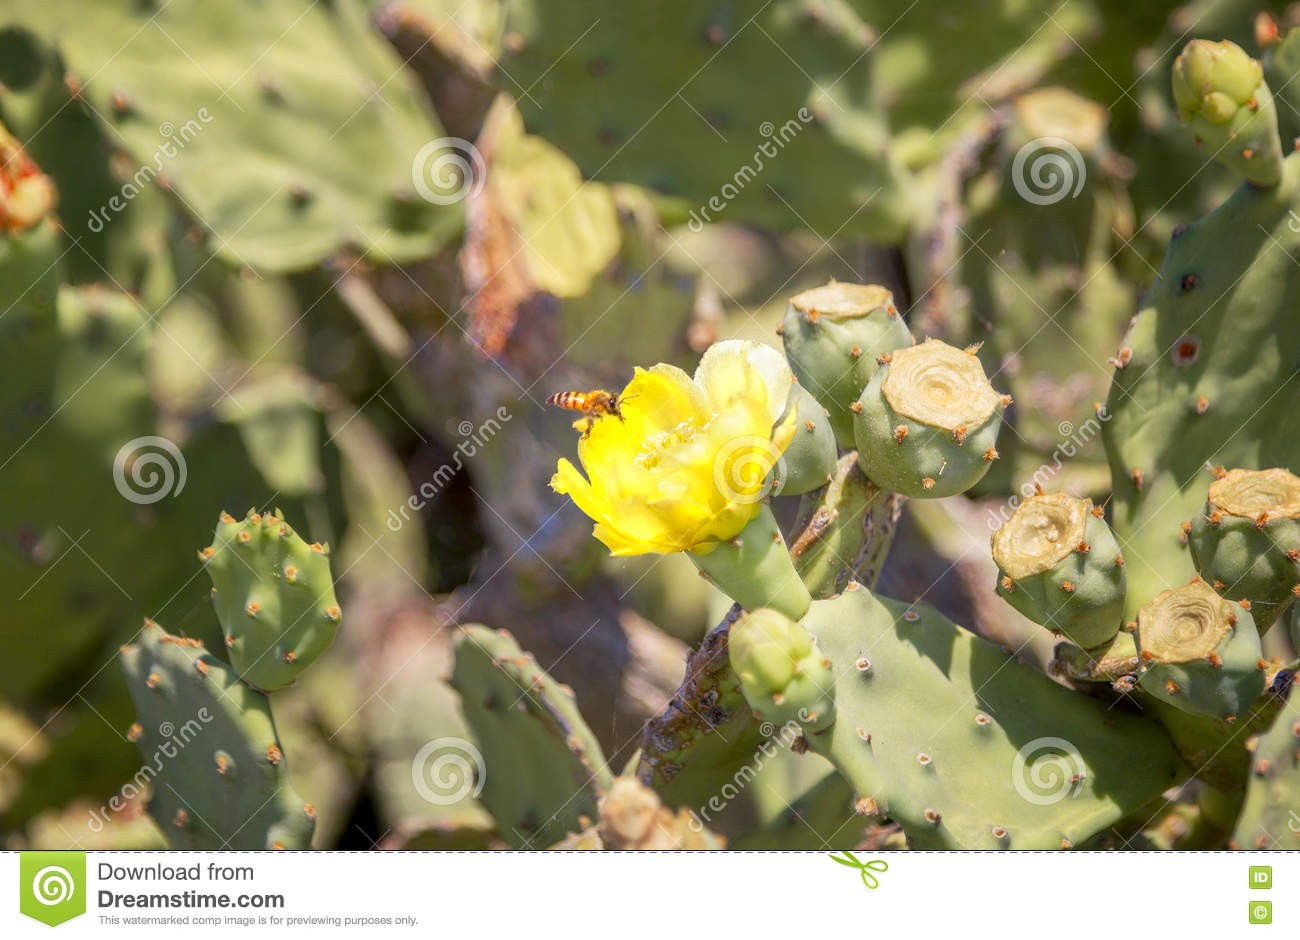 Blooming Cactus With Yellow Flower Stock Photo Image Of Botany